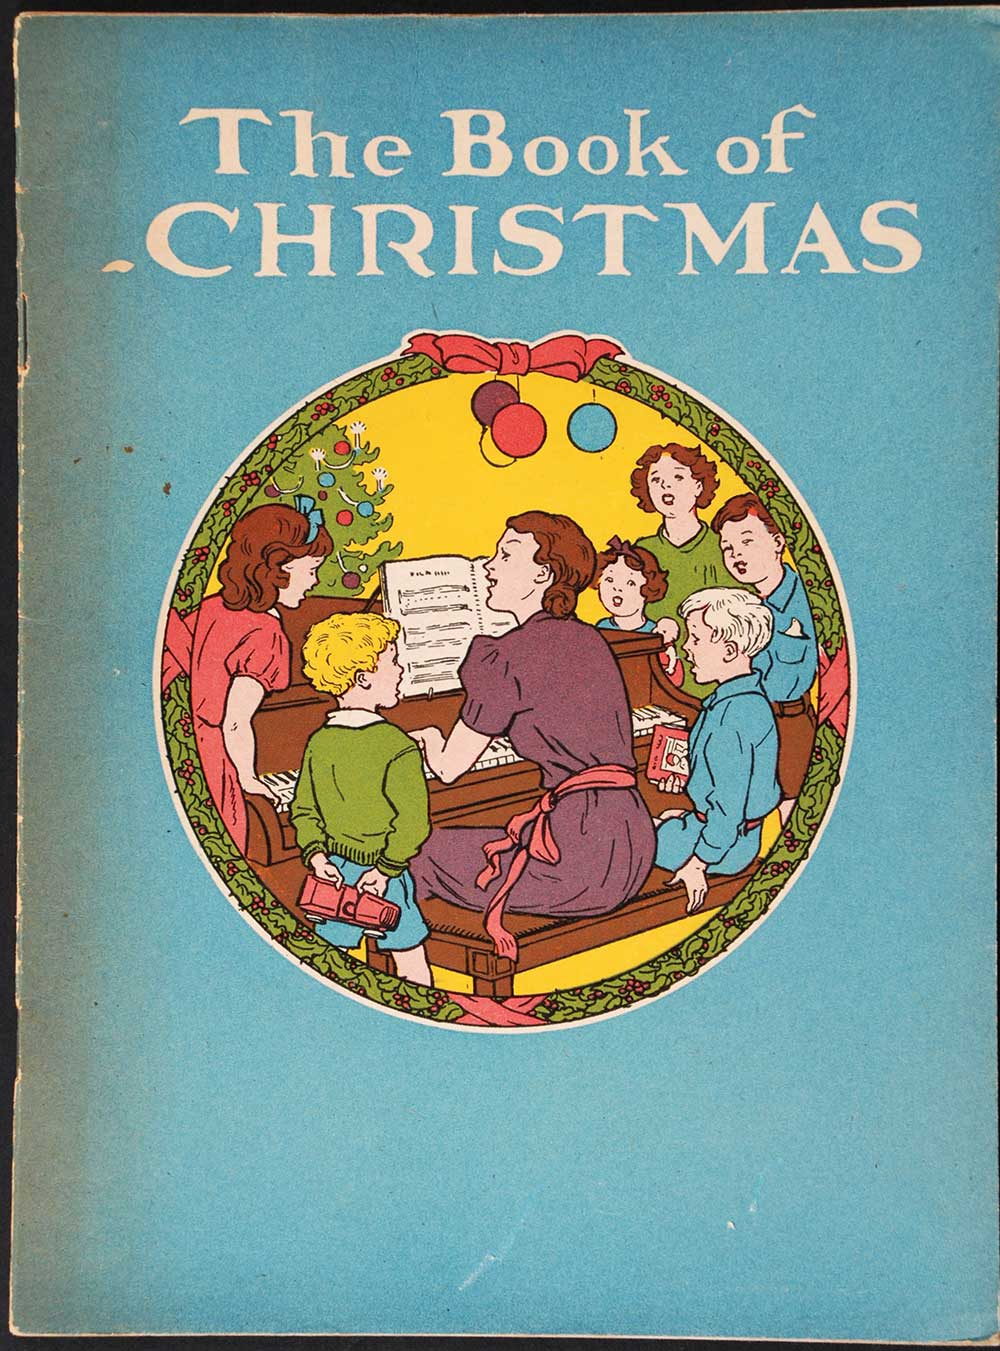 <em>The book of Christmas: a collection of carols, stories, and games for the Christmas season.</em> Wellington: A.H. & A.W. Reed, 1943.